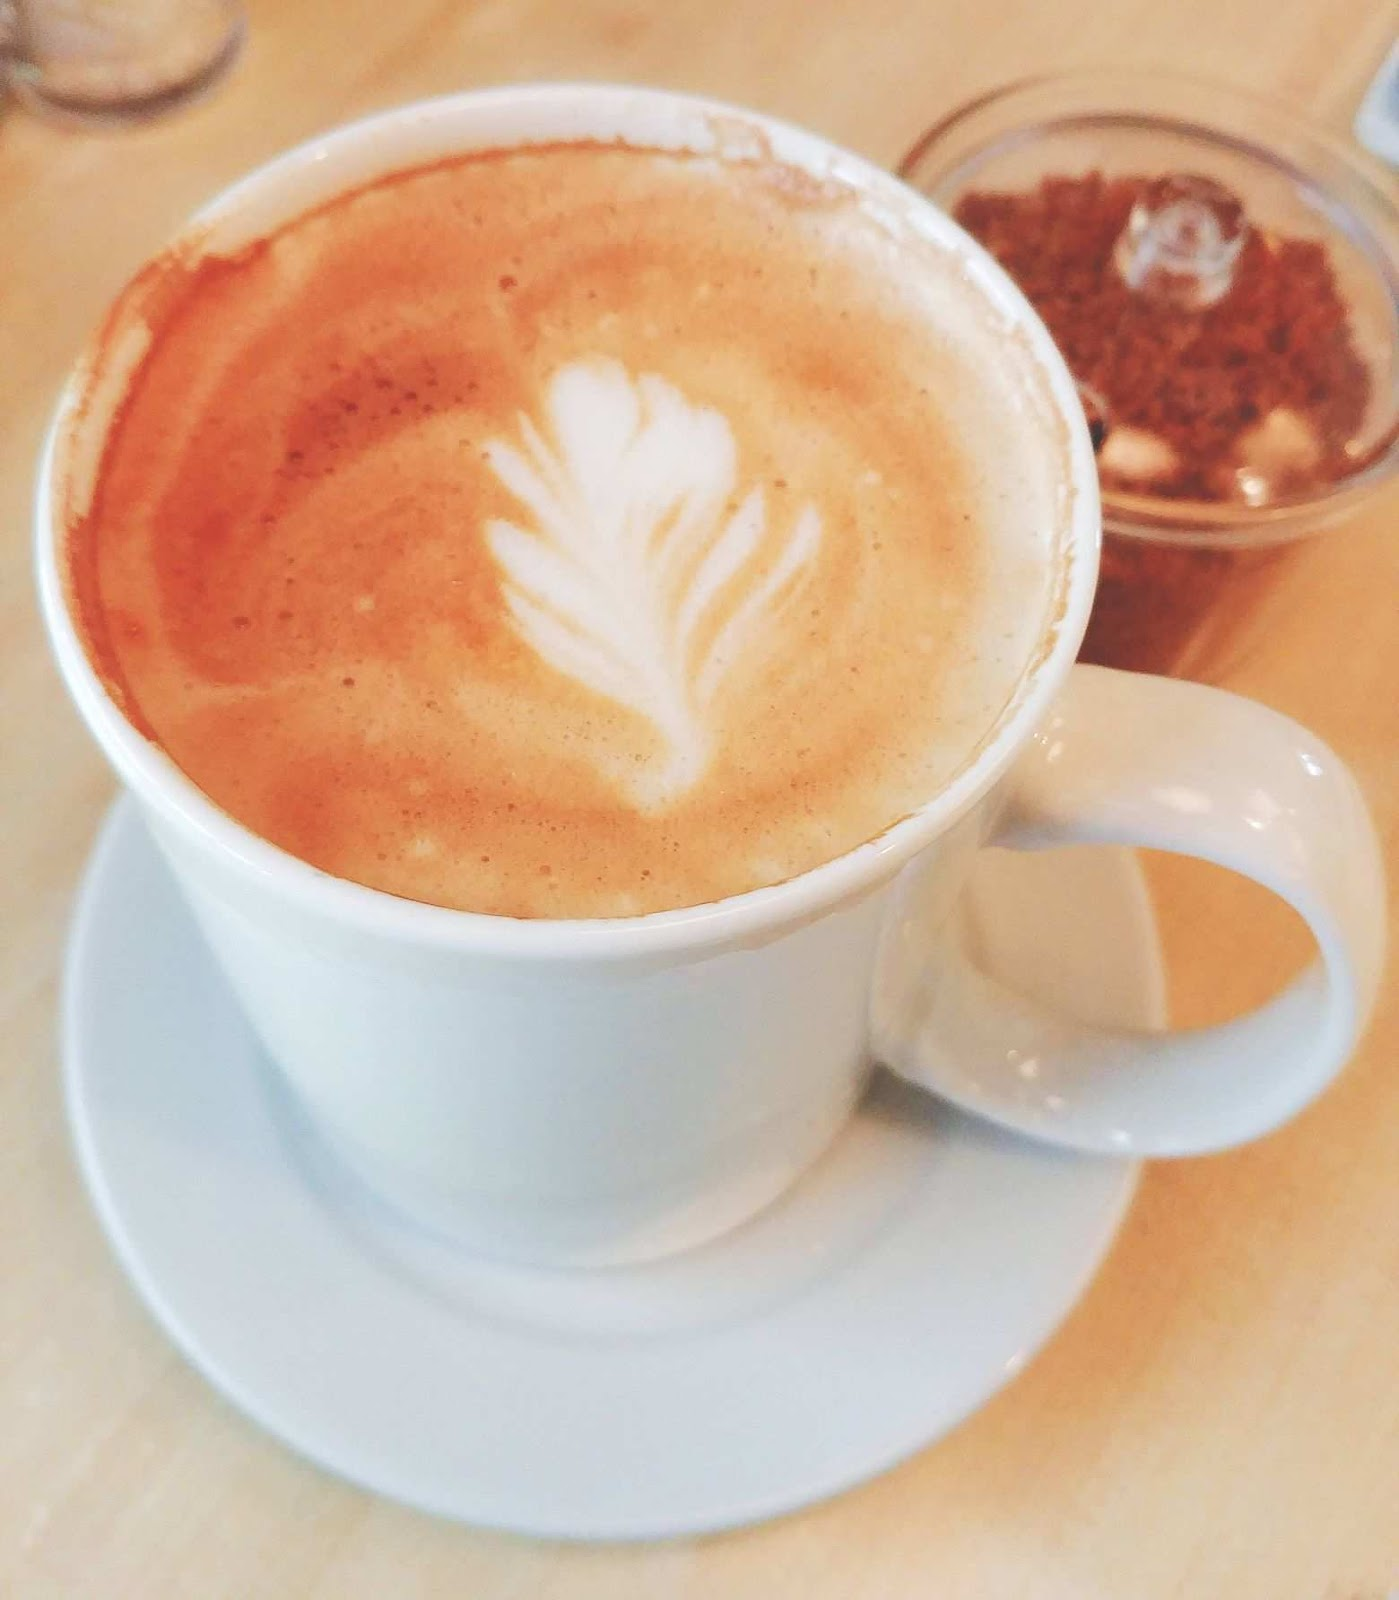 Cafe latte at Sweet Tomato Grill